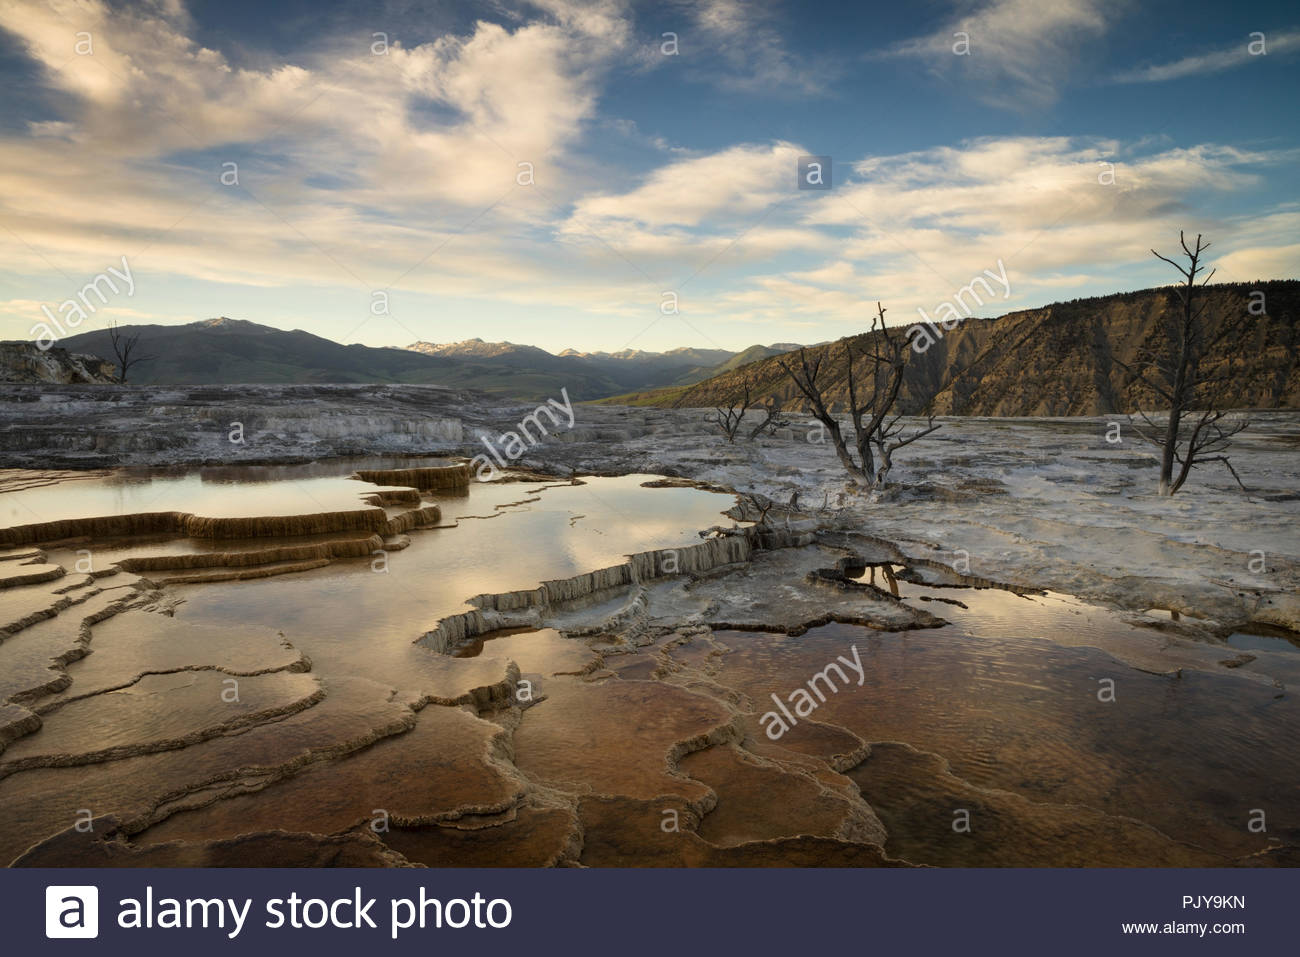 Mammoth Hot Springs au coucher du soleil, le Parc National de Yellowstone, Wyoming Photo Stock